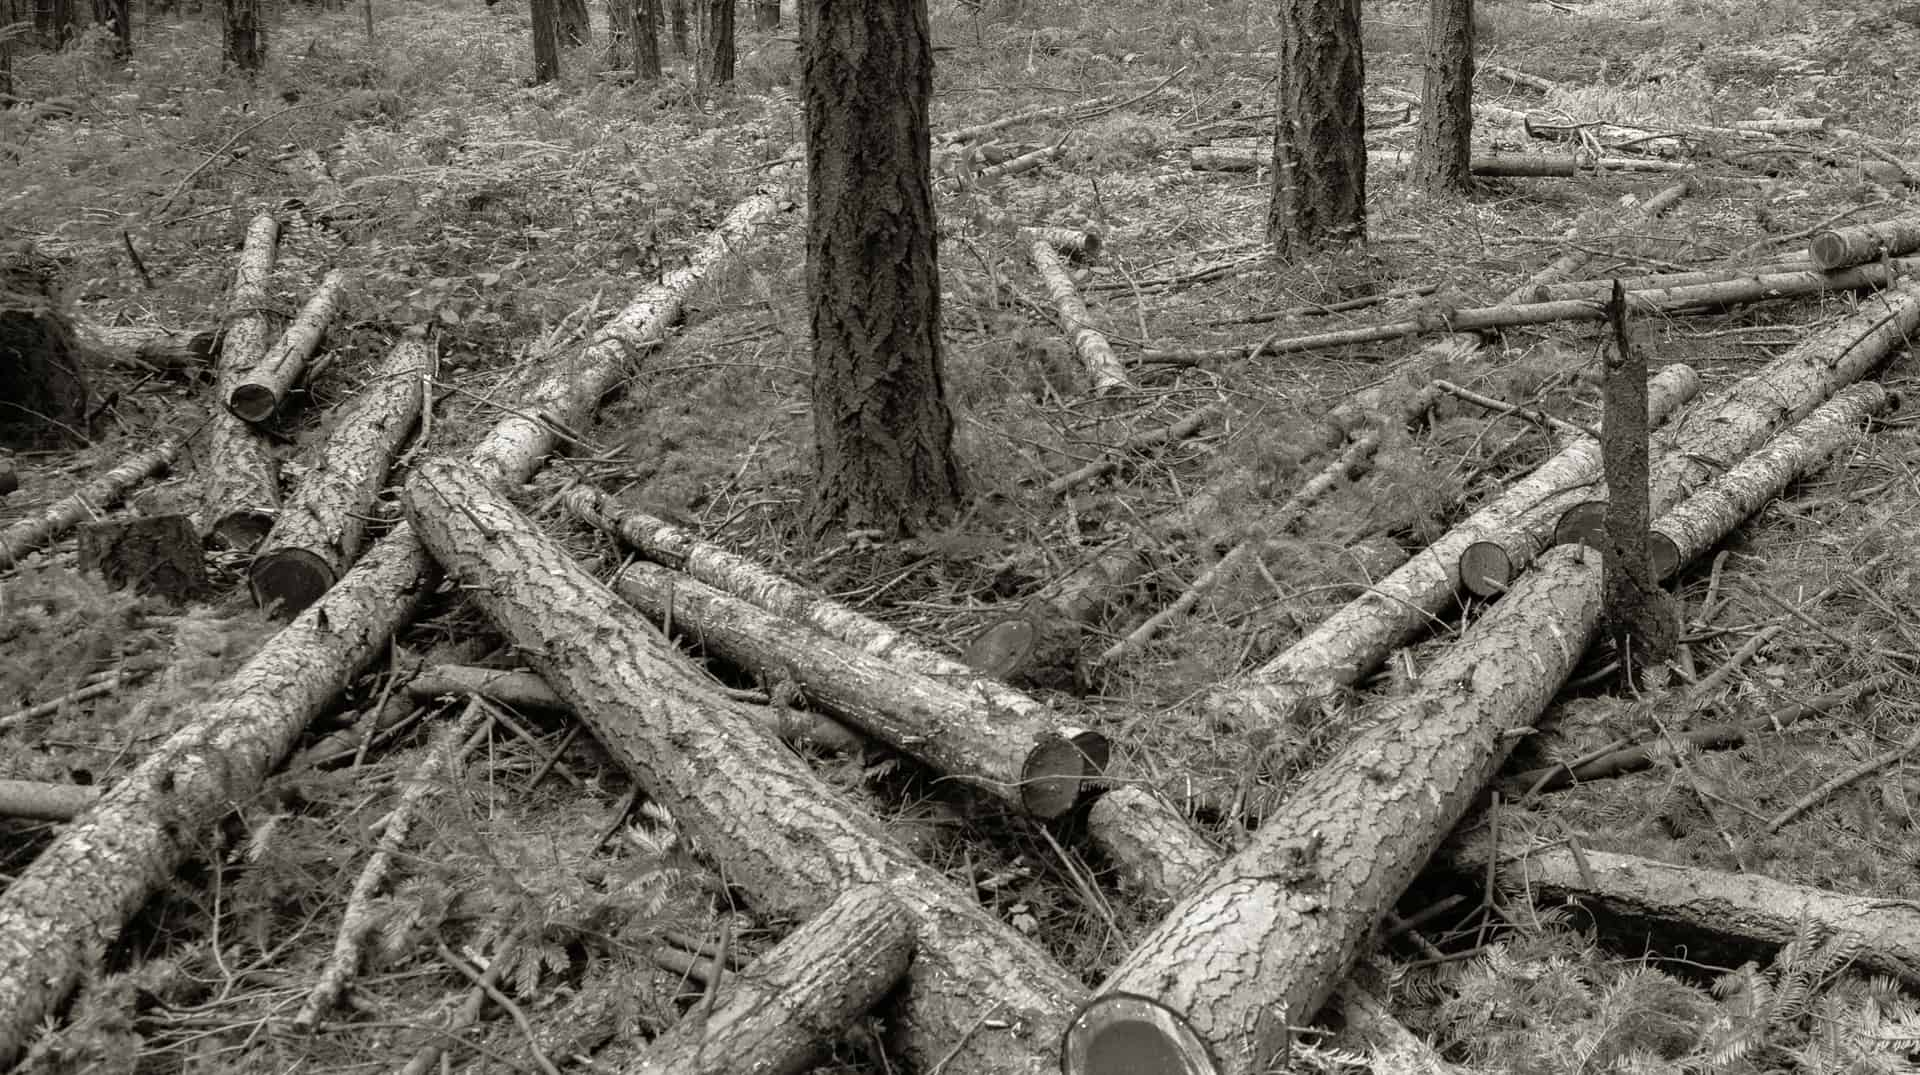 black and white photo of downed trees